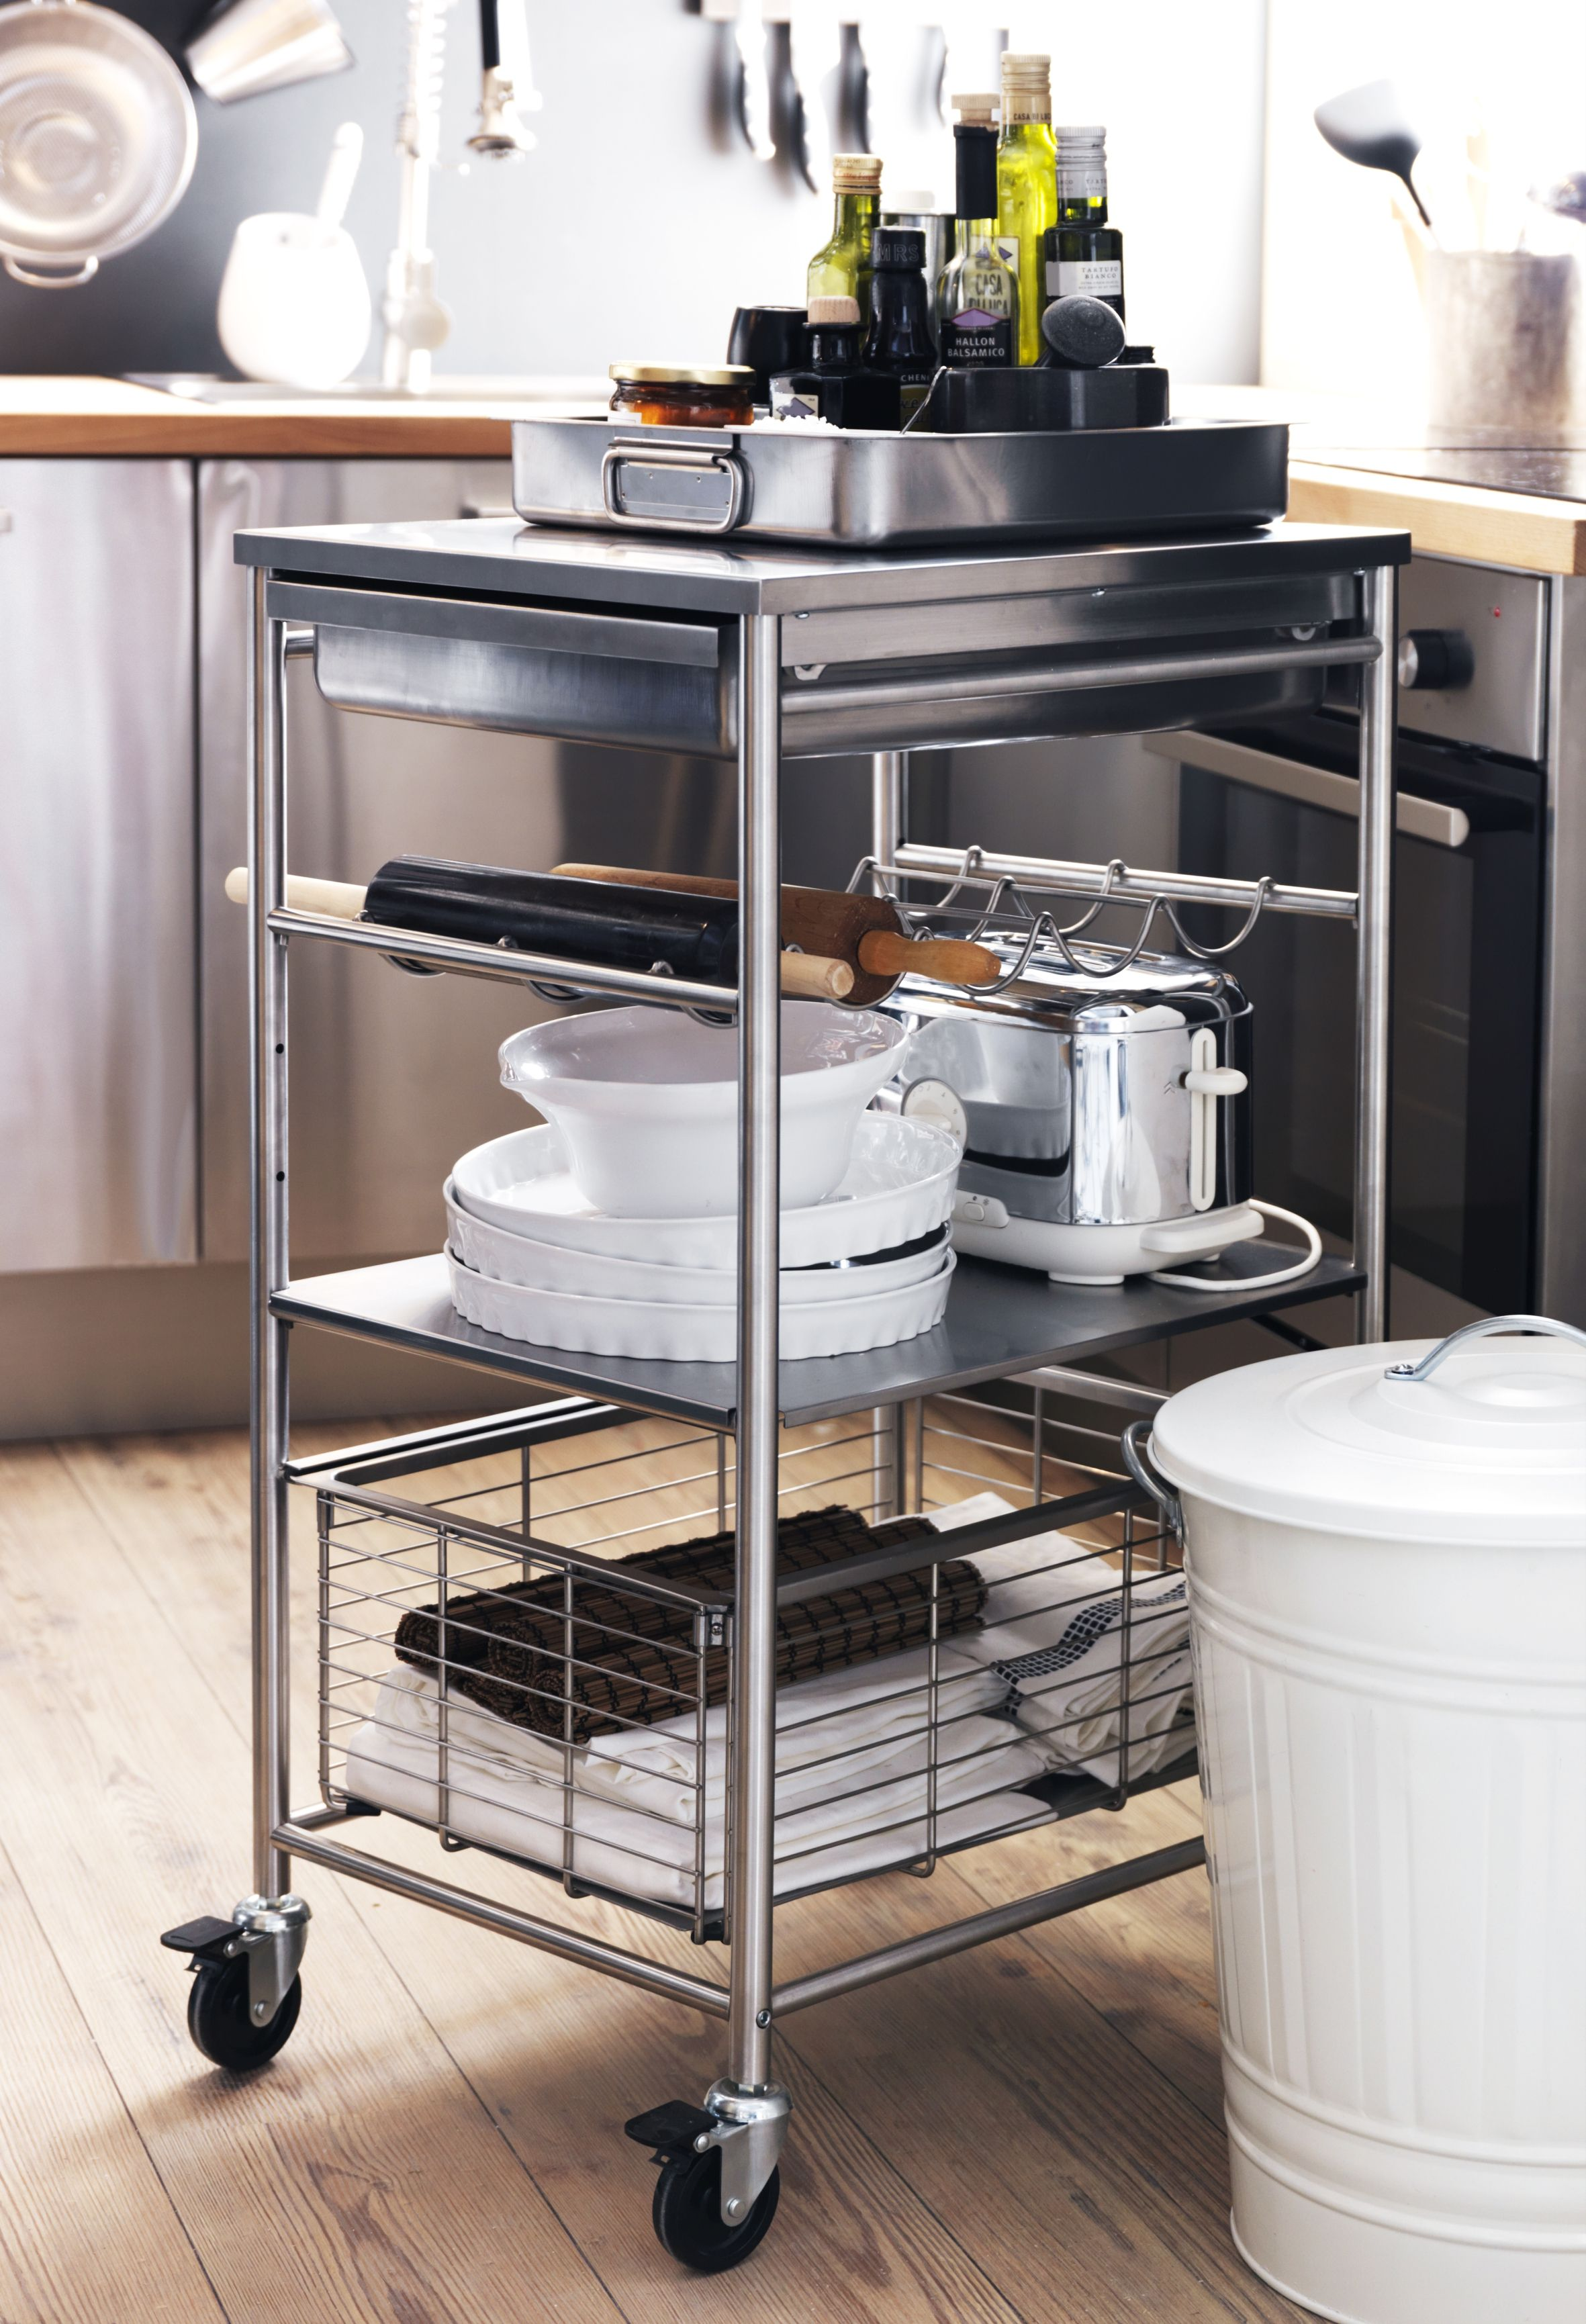 storage model cart new design of ikea kitchen product best stenstorp image